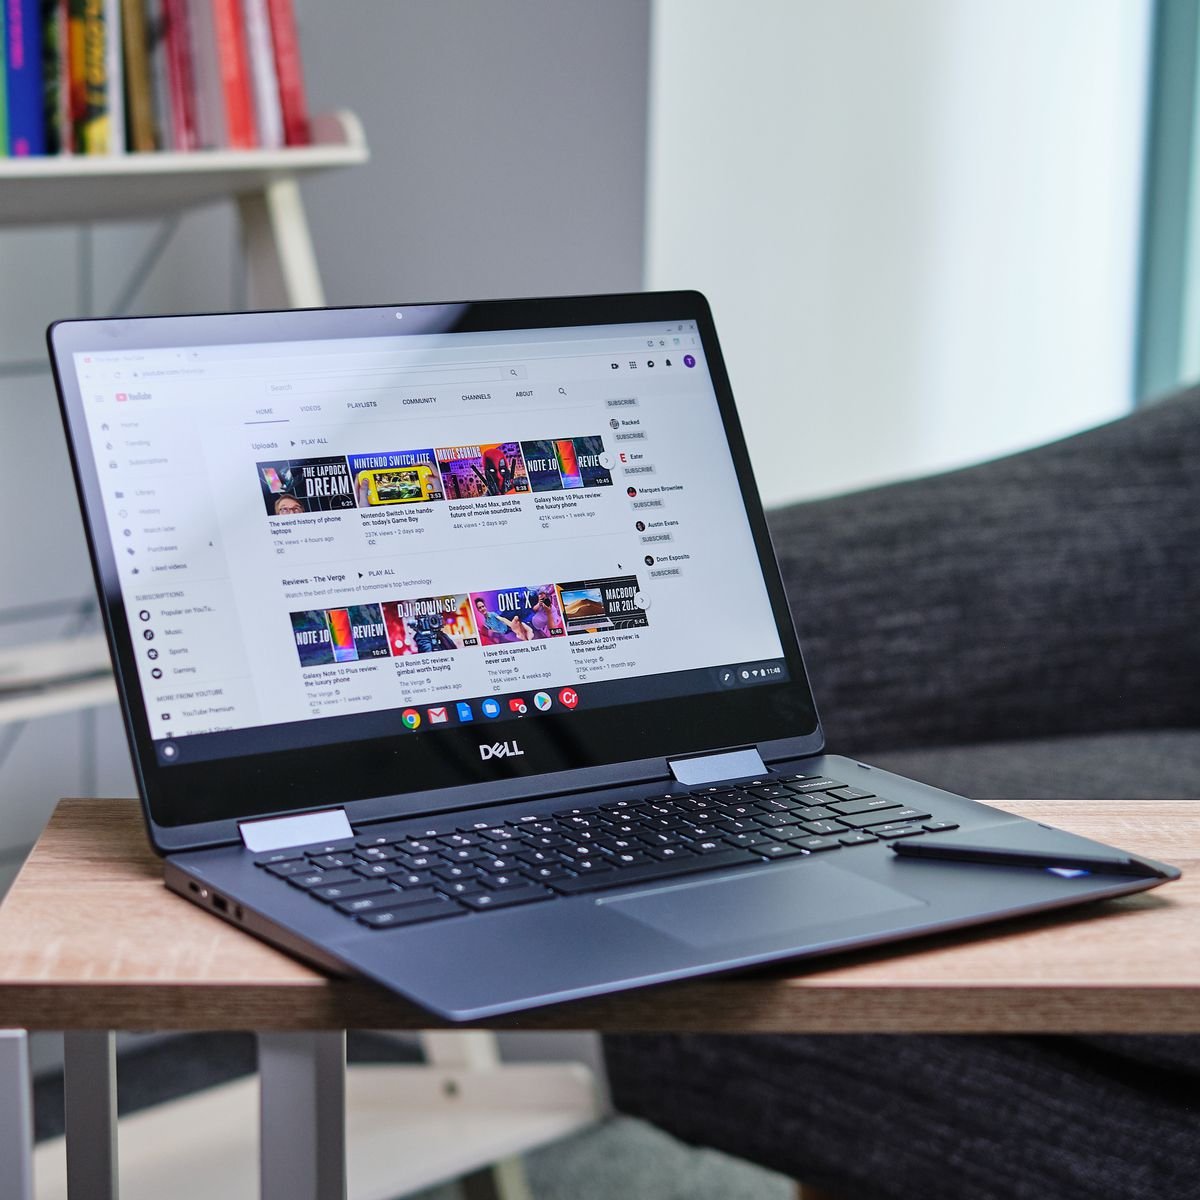 Best Chromebooks 2020: Dell Inspiron 14